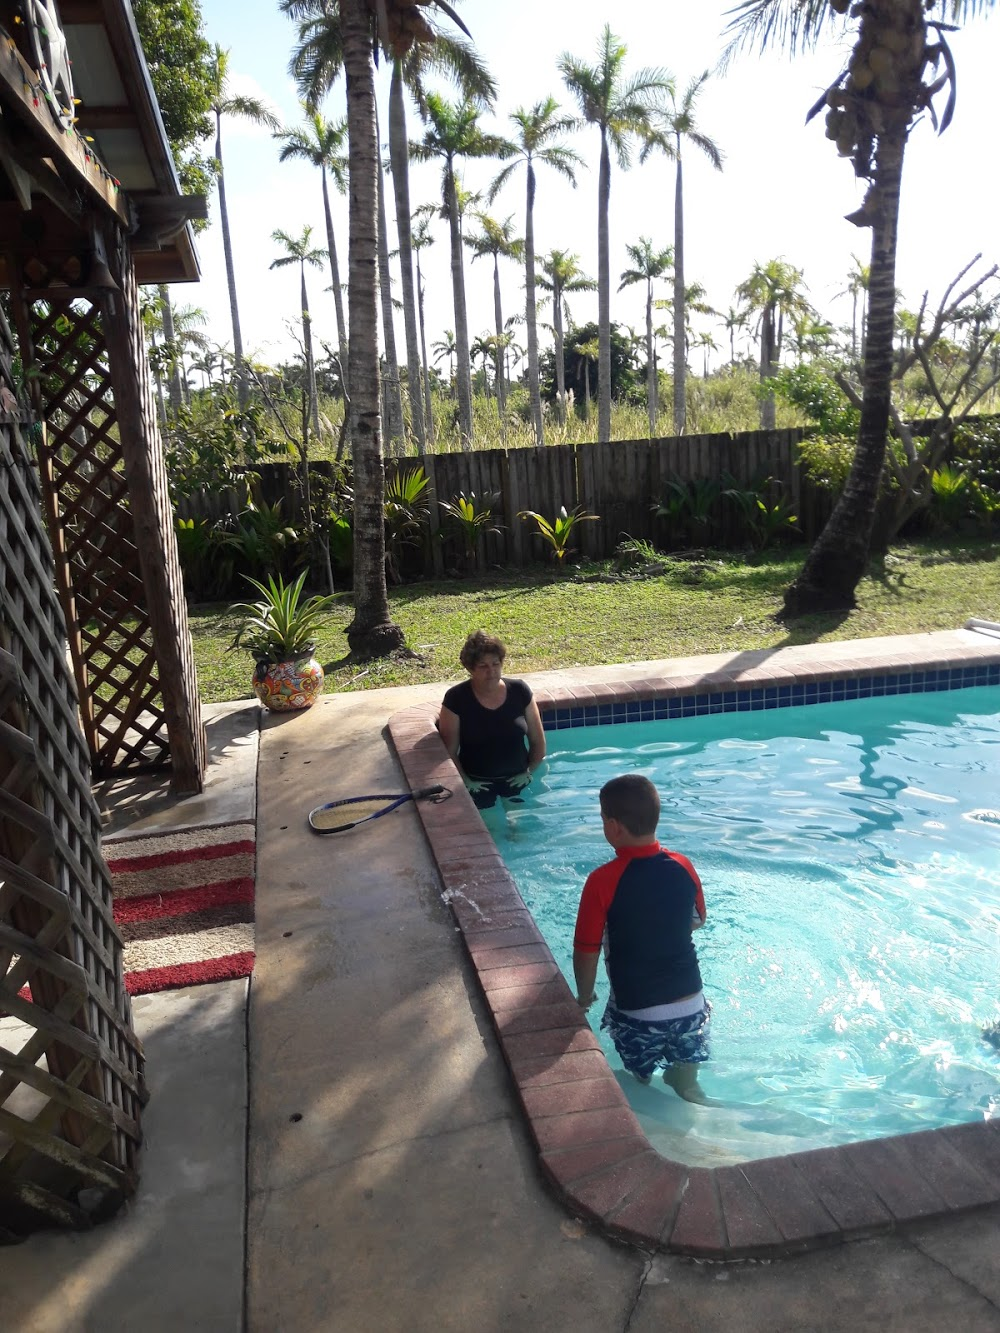 Gator Pools and Spa Construction – Pool Construction